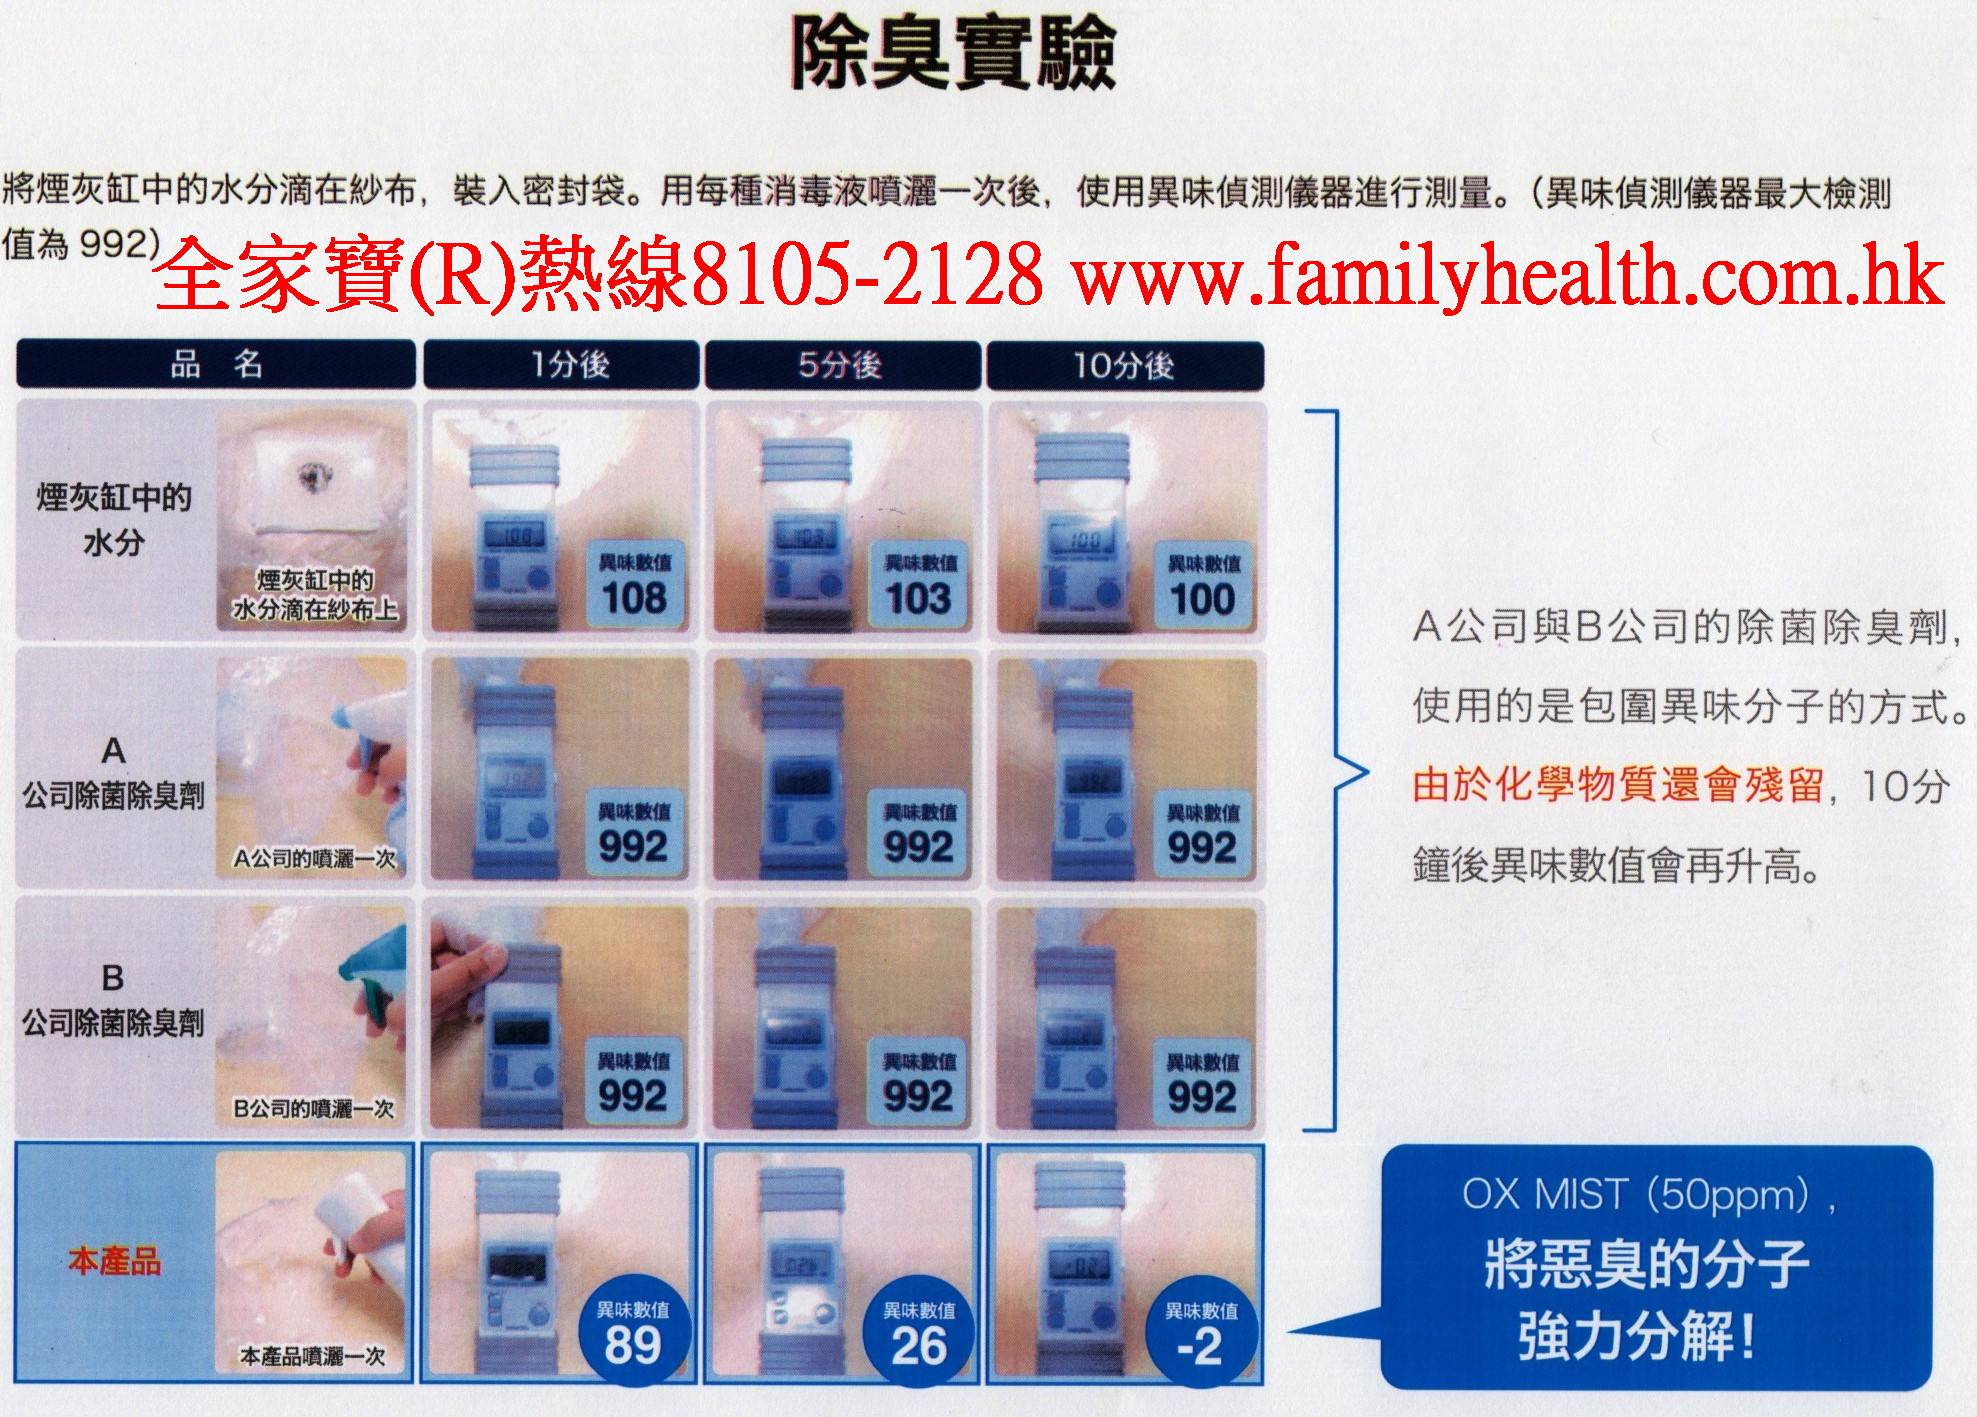 http://www.familyhealth.com.hk/files/full/1083_2.jpg